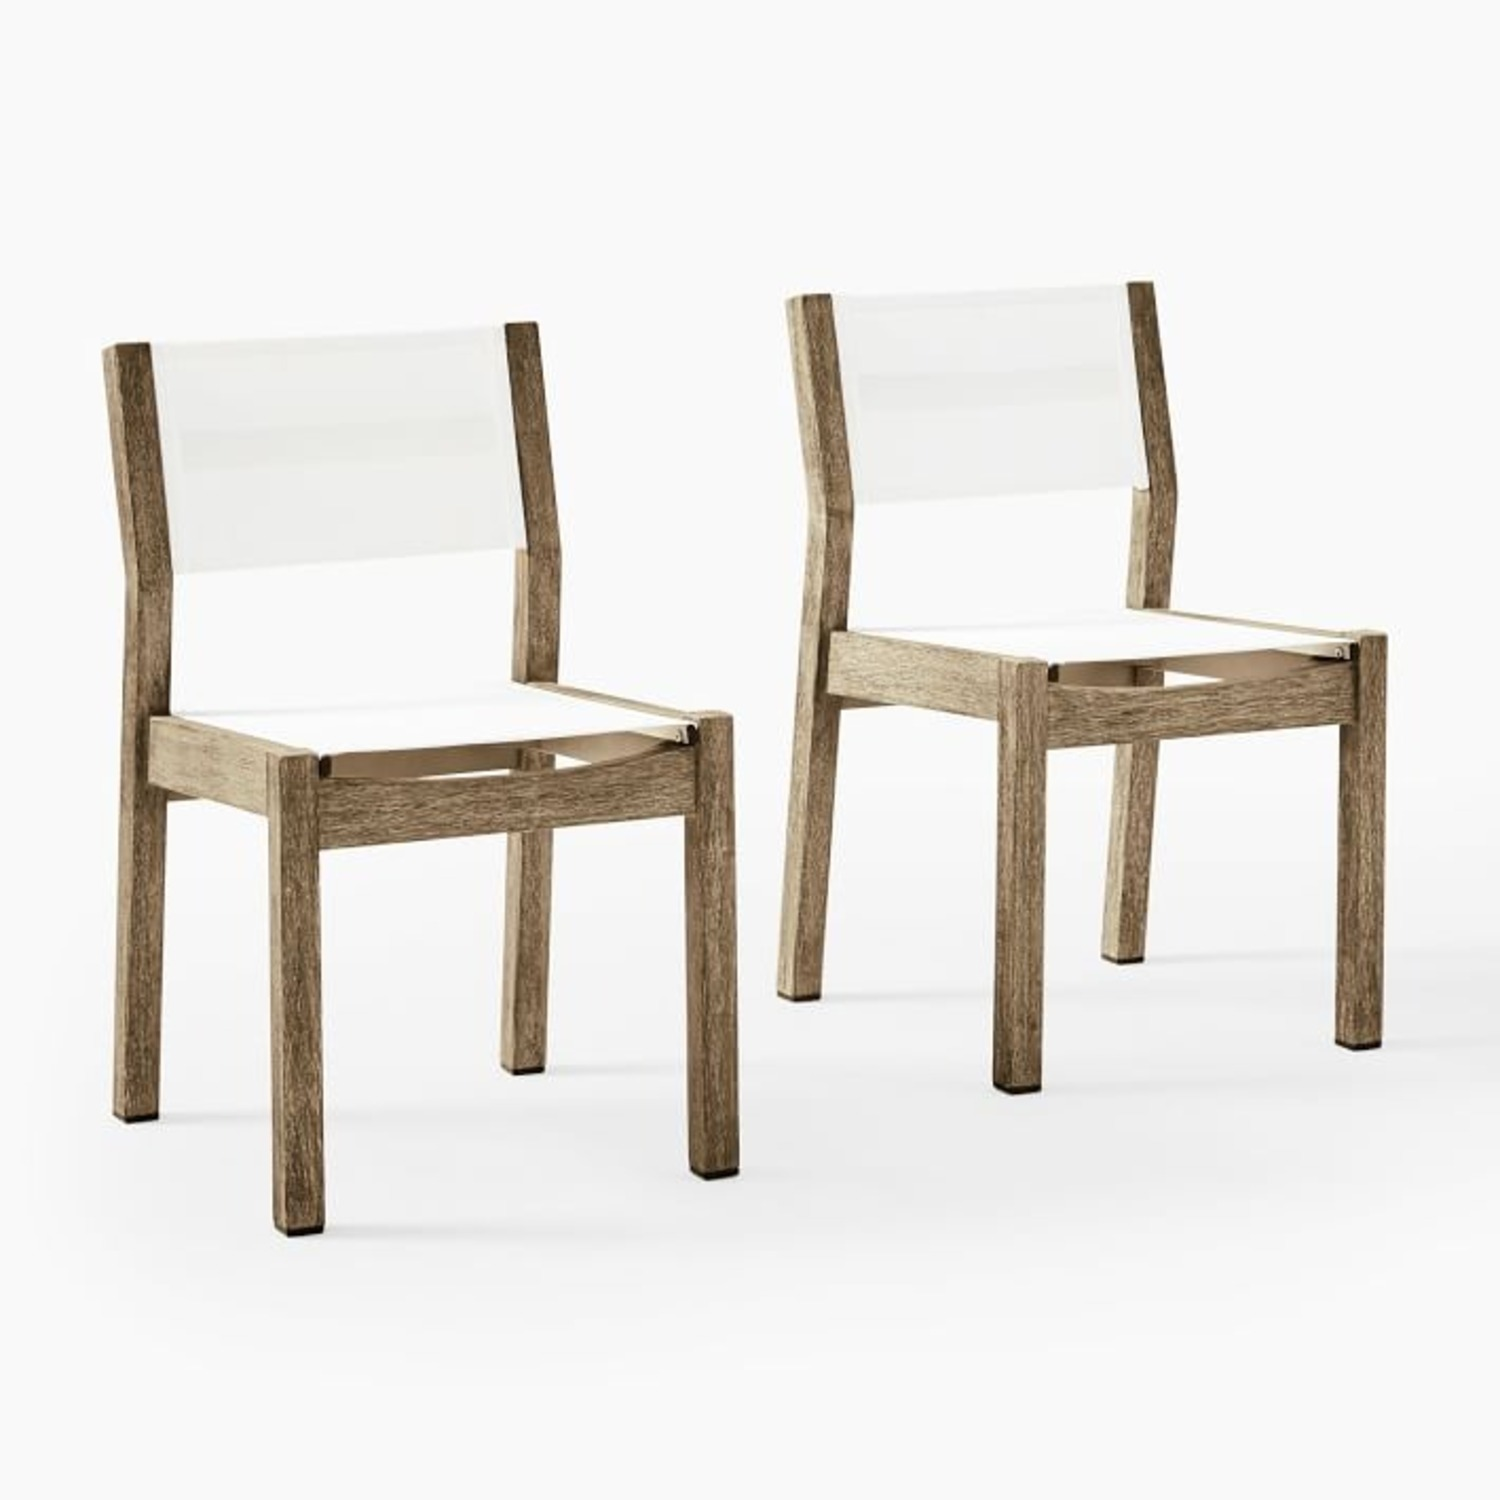 West Elm Portside Dining Chairs, Set of 2 - image-1